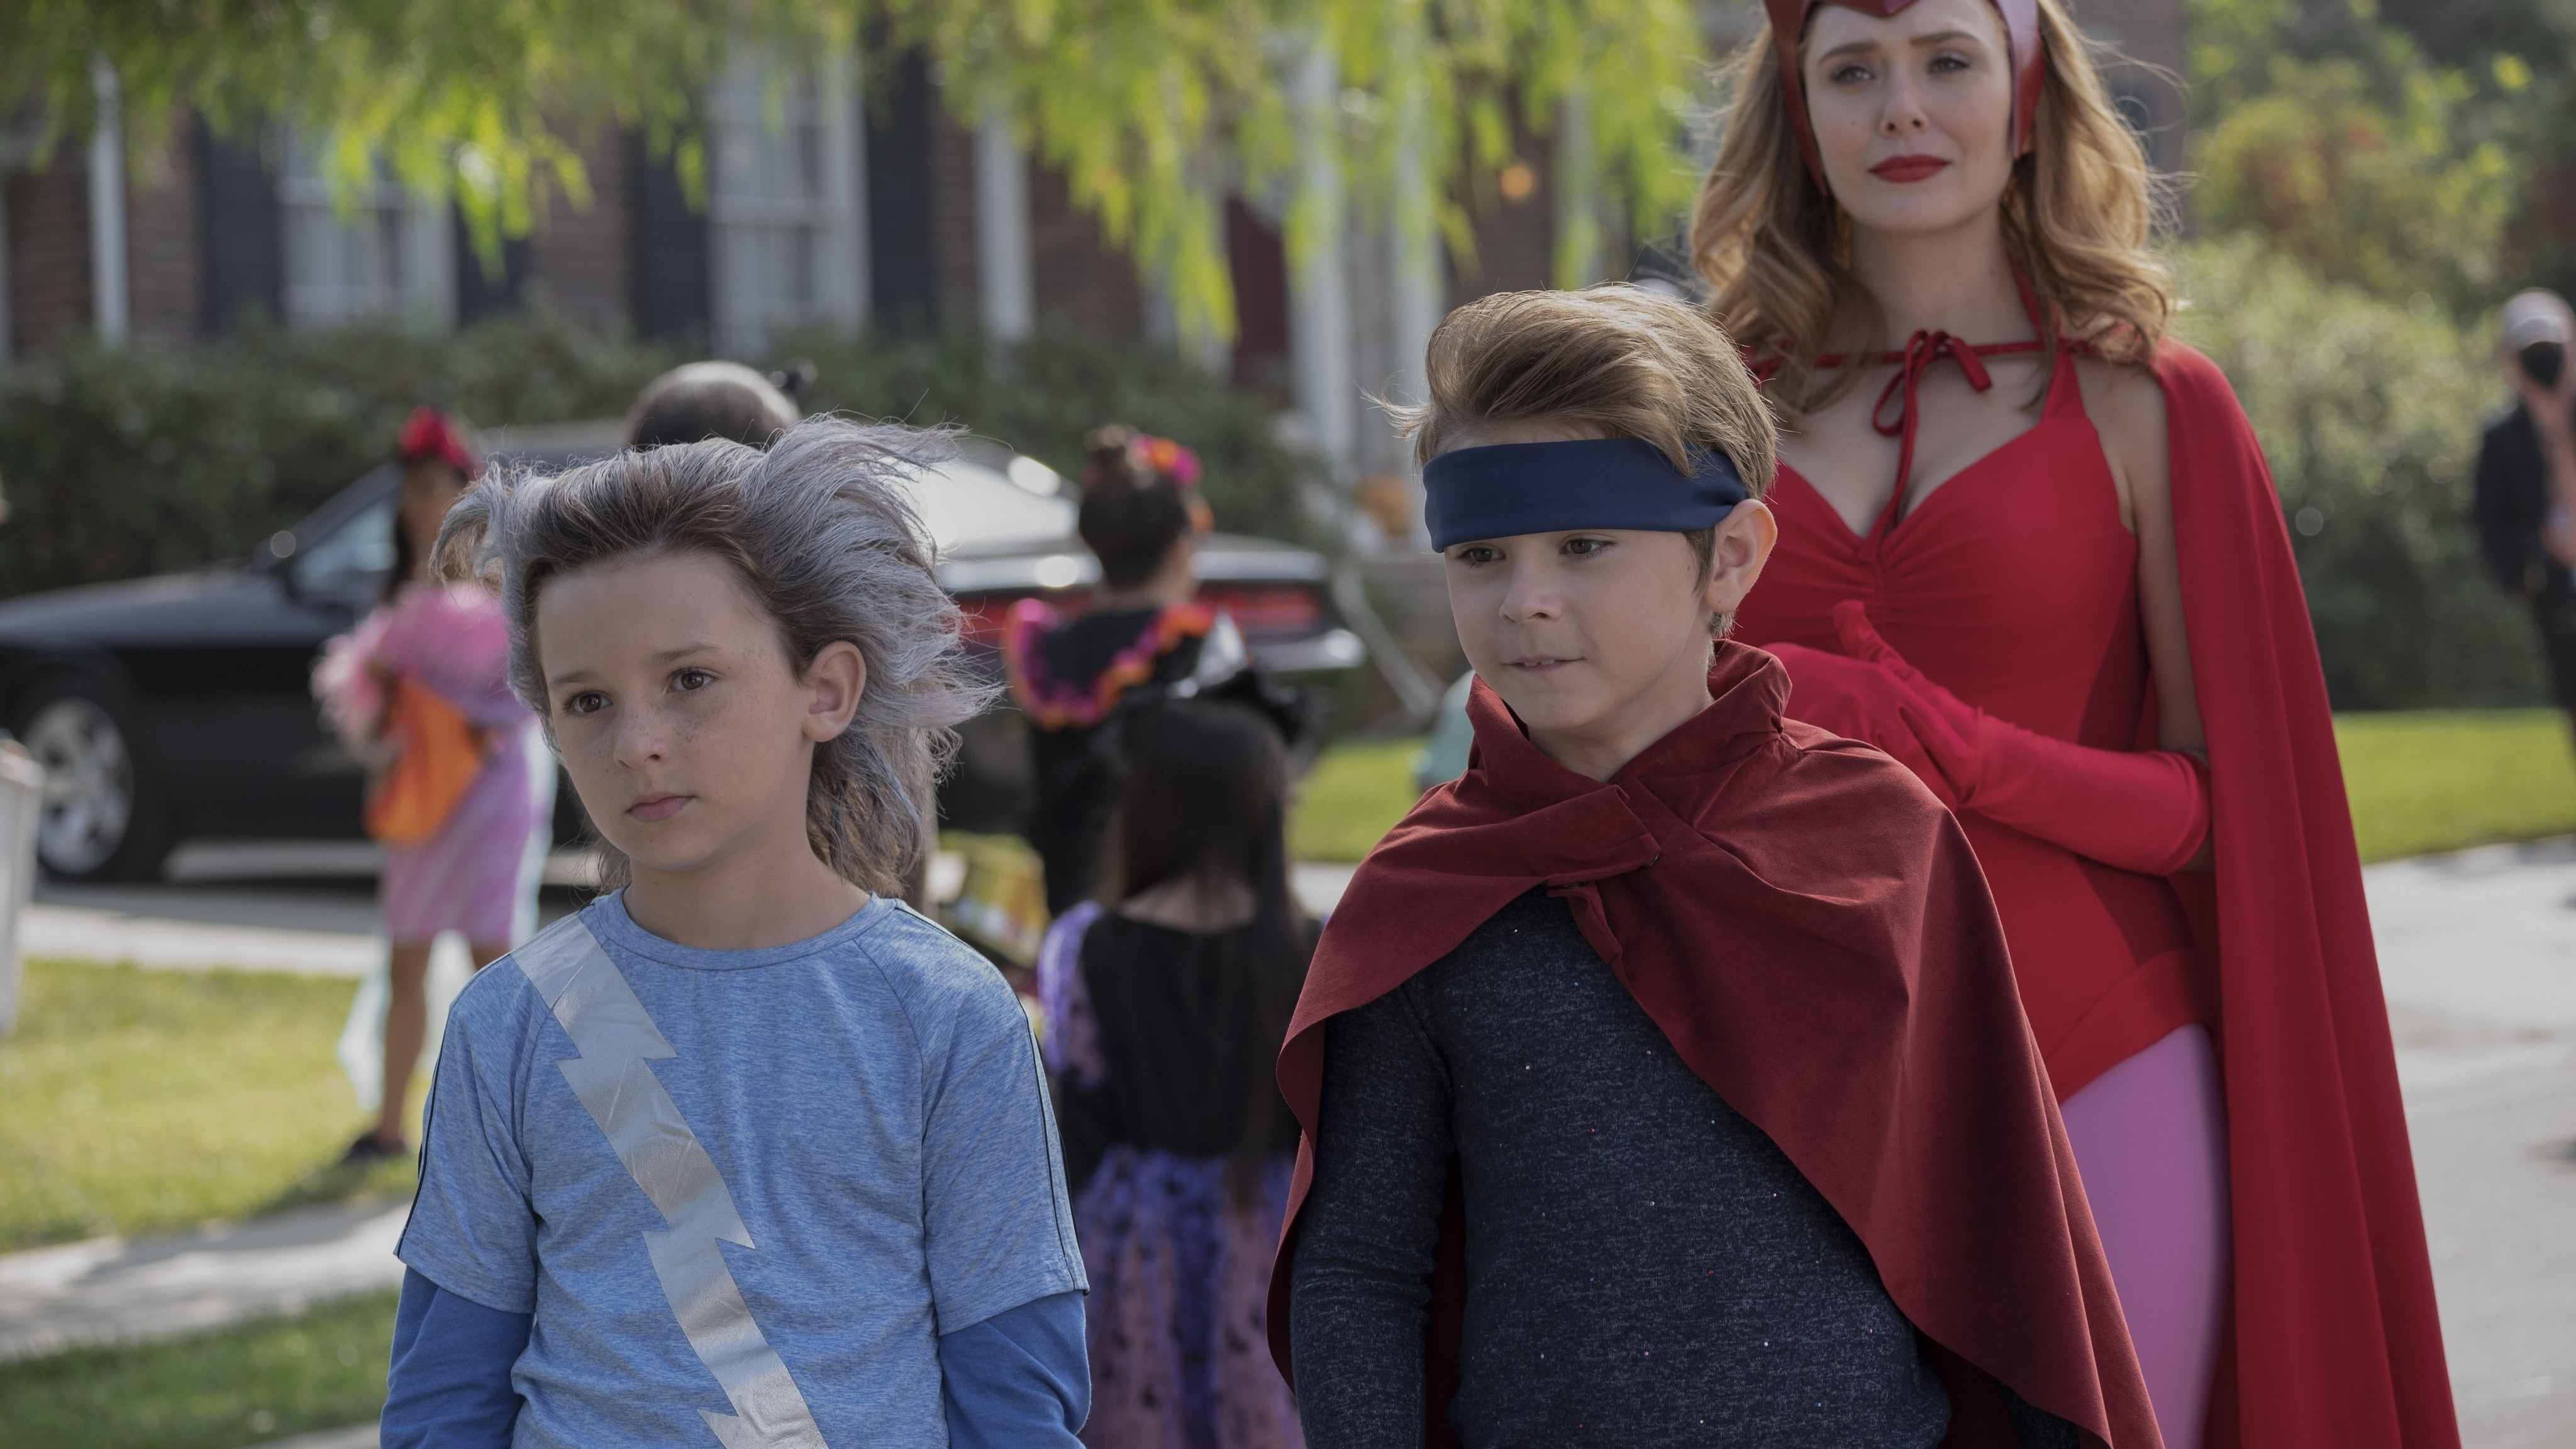 (L-R): Jett Klyne as Tommy, Julian Hilliard as Billy and Elizabeth Olsen as Wanda Maximoff in Marvel Studios' WANDAVISION exclusively on Disney+. Photo by Suzanne Tenner. ©Marvel Studios 2021. All Rights Reserved.